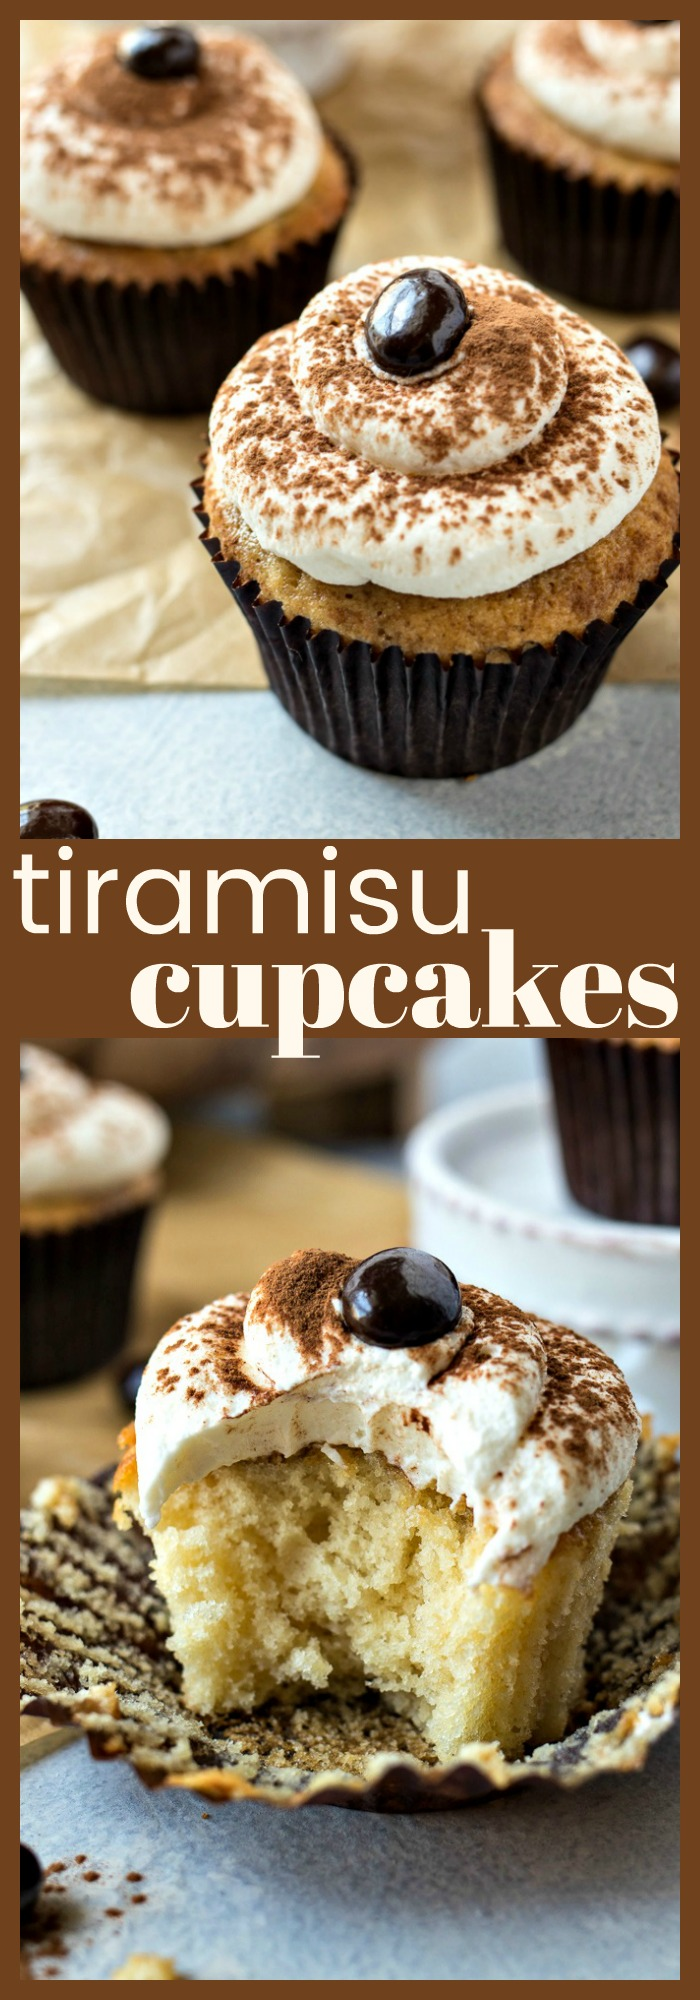 Tiramisu Cupcakes photo collage